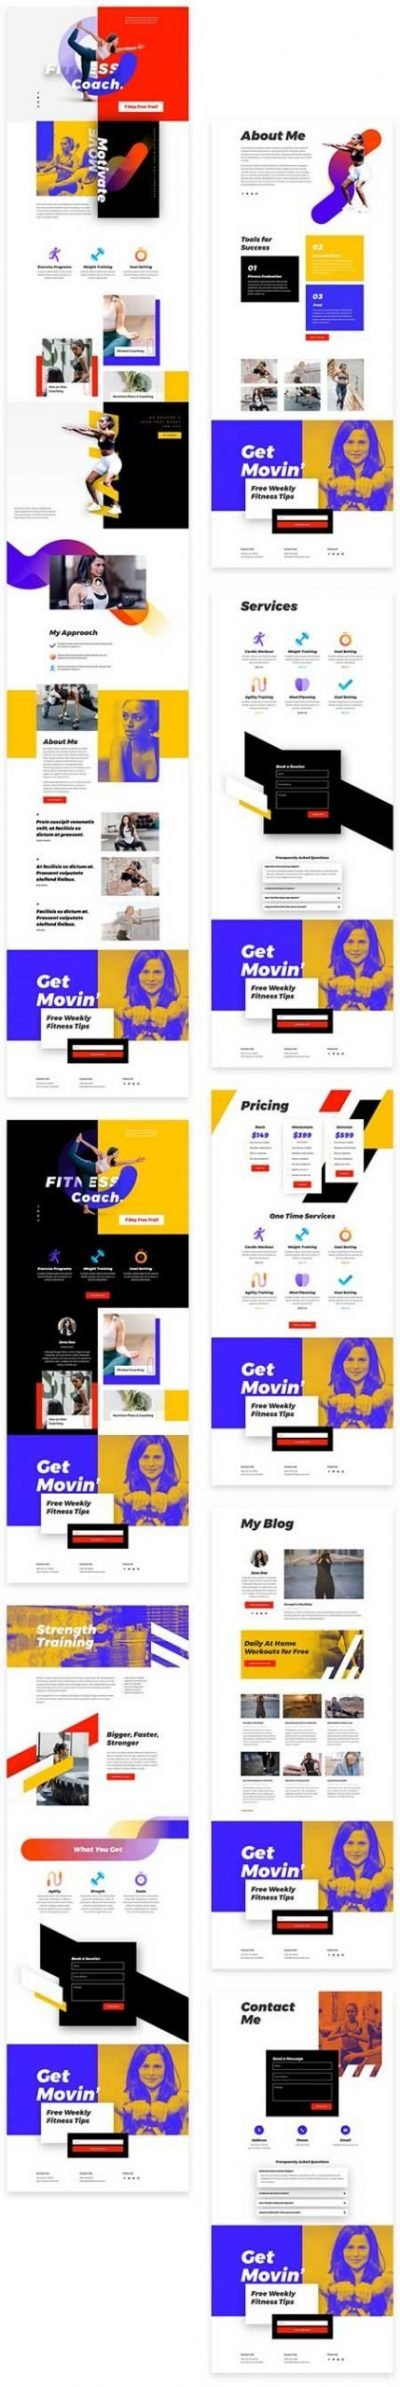 Divi fitness coach layout